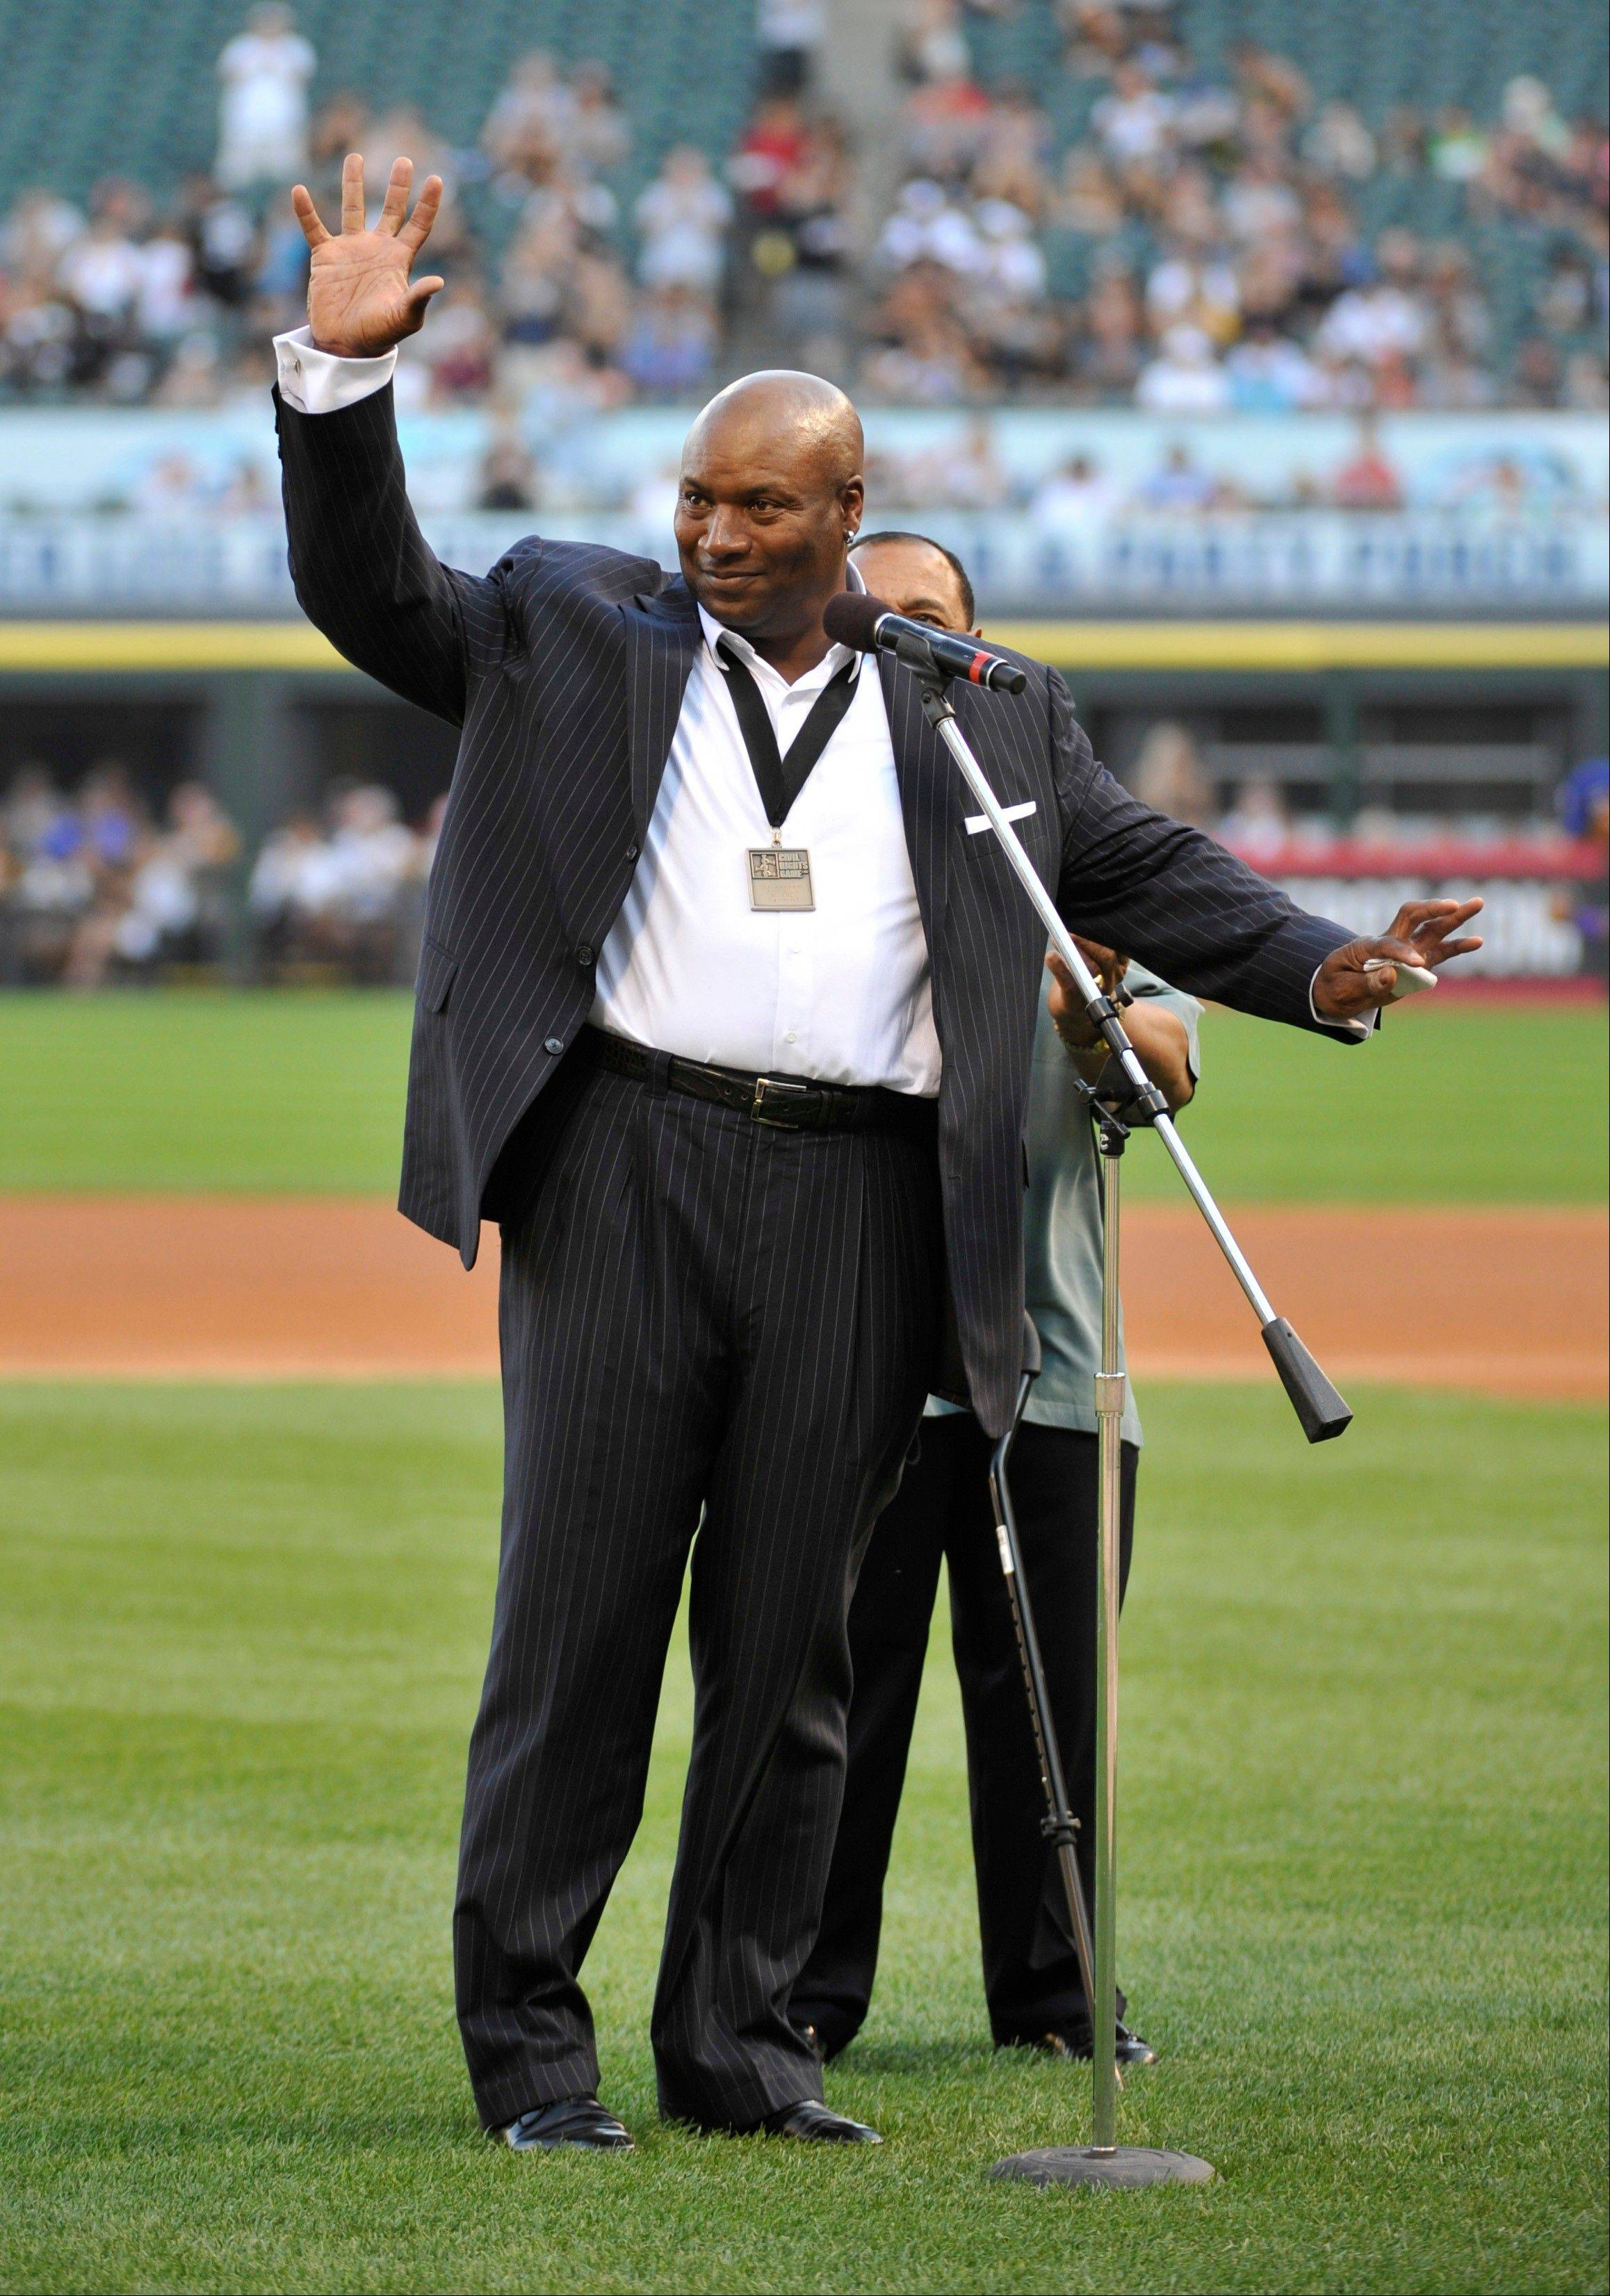 Bo Jackson is recognized on the field as a MLB Beacon Award recipient before Saturday night's seventh annual Civil Rights Game between the White Sox and the Texas Rangers at U.S. Cellular Field.